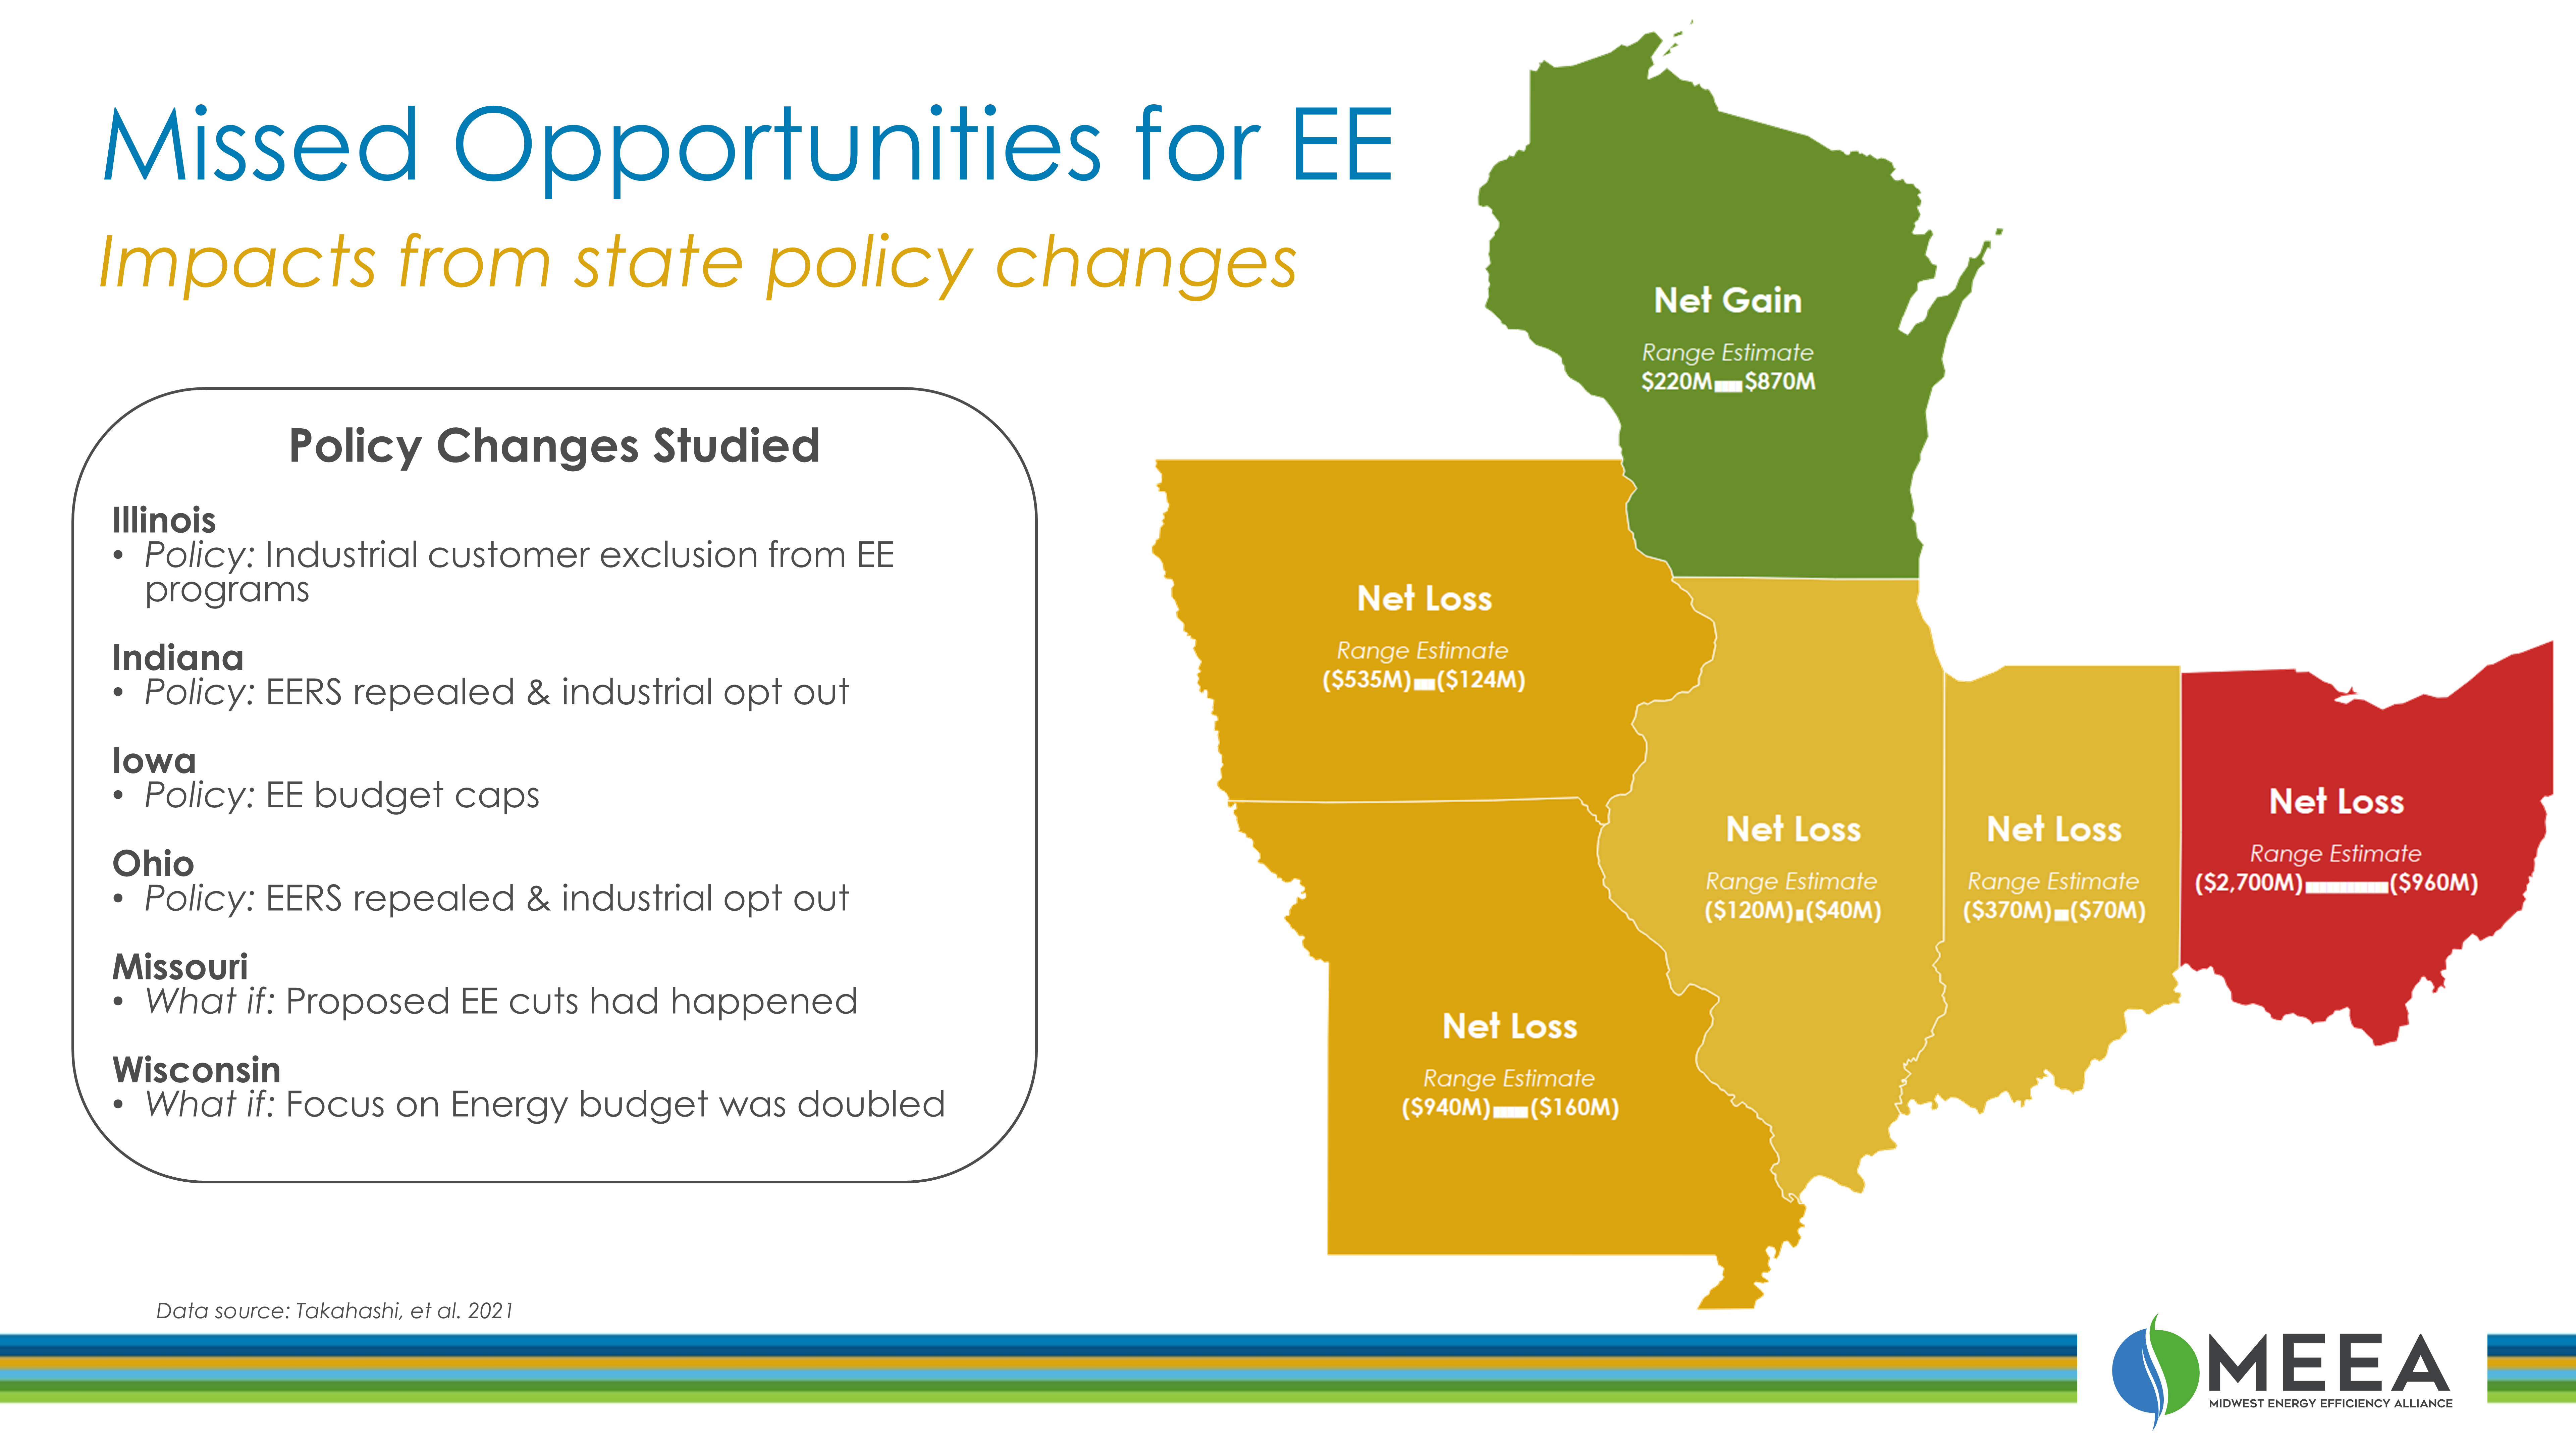 missed opportunities net benefit map